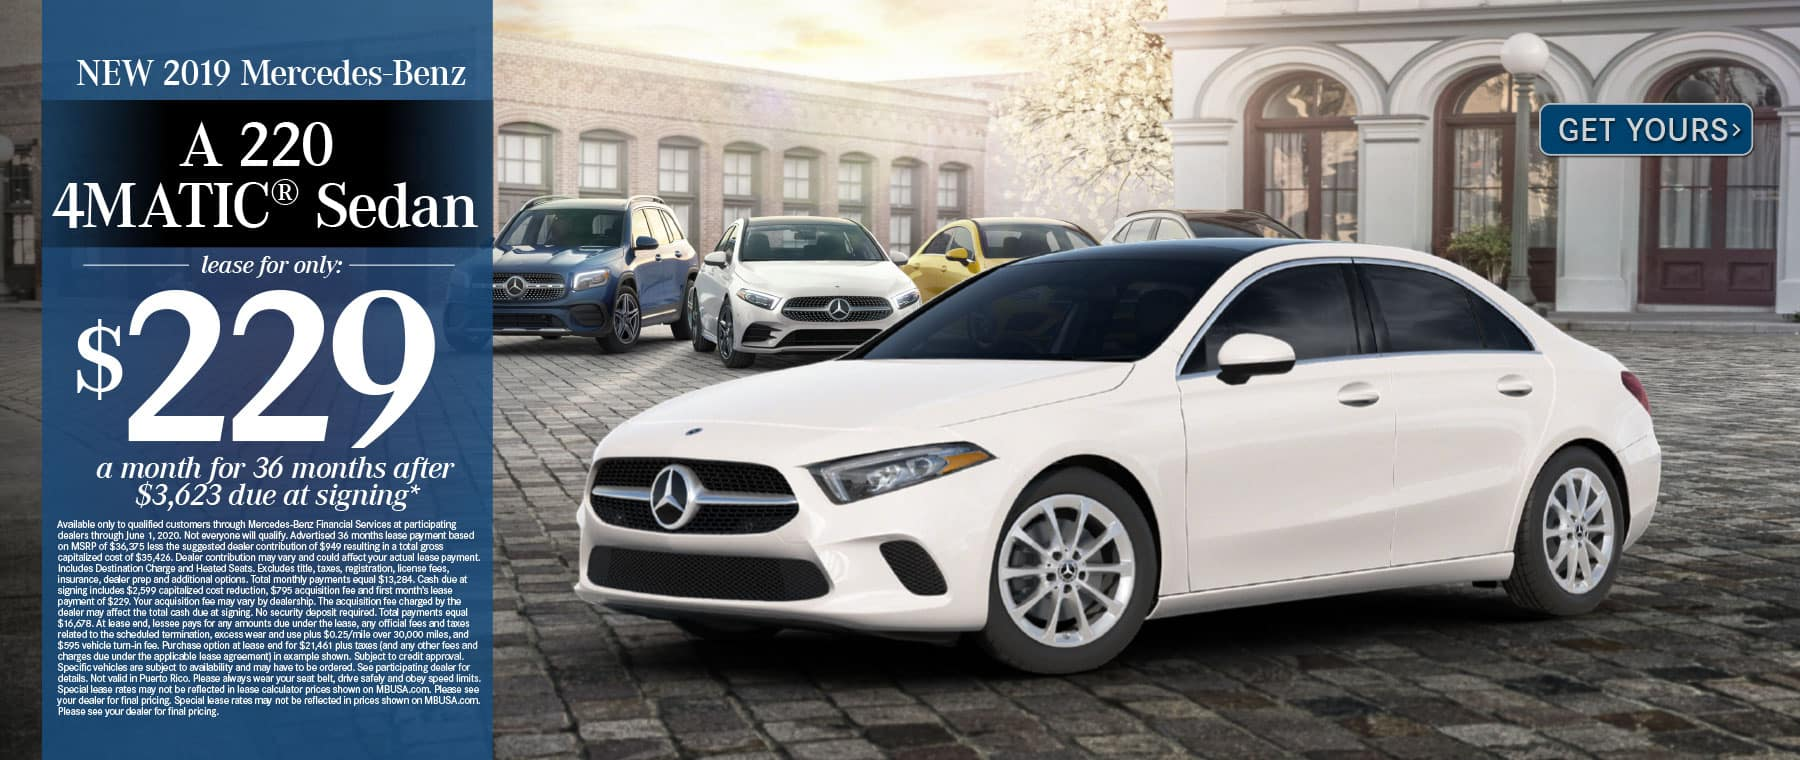 2019 Mercedes-Benz A220 Sedan $229 a month for 36 months after $3623 due at signing. Get Yours.